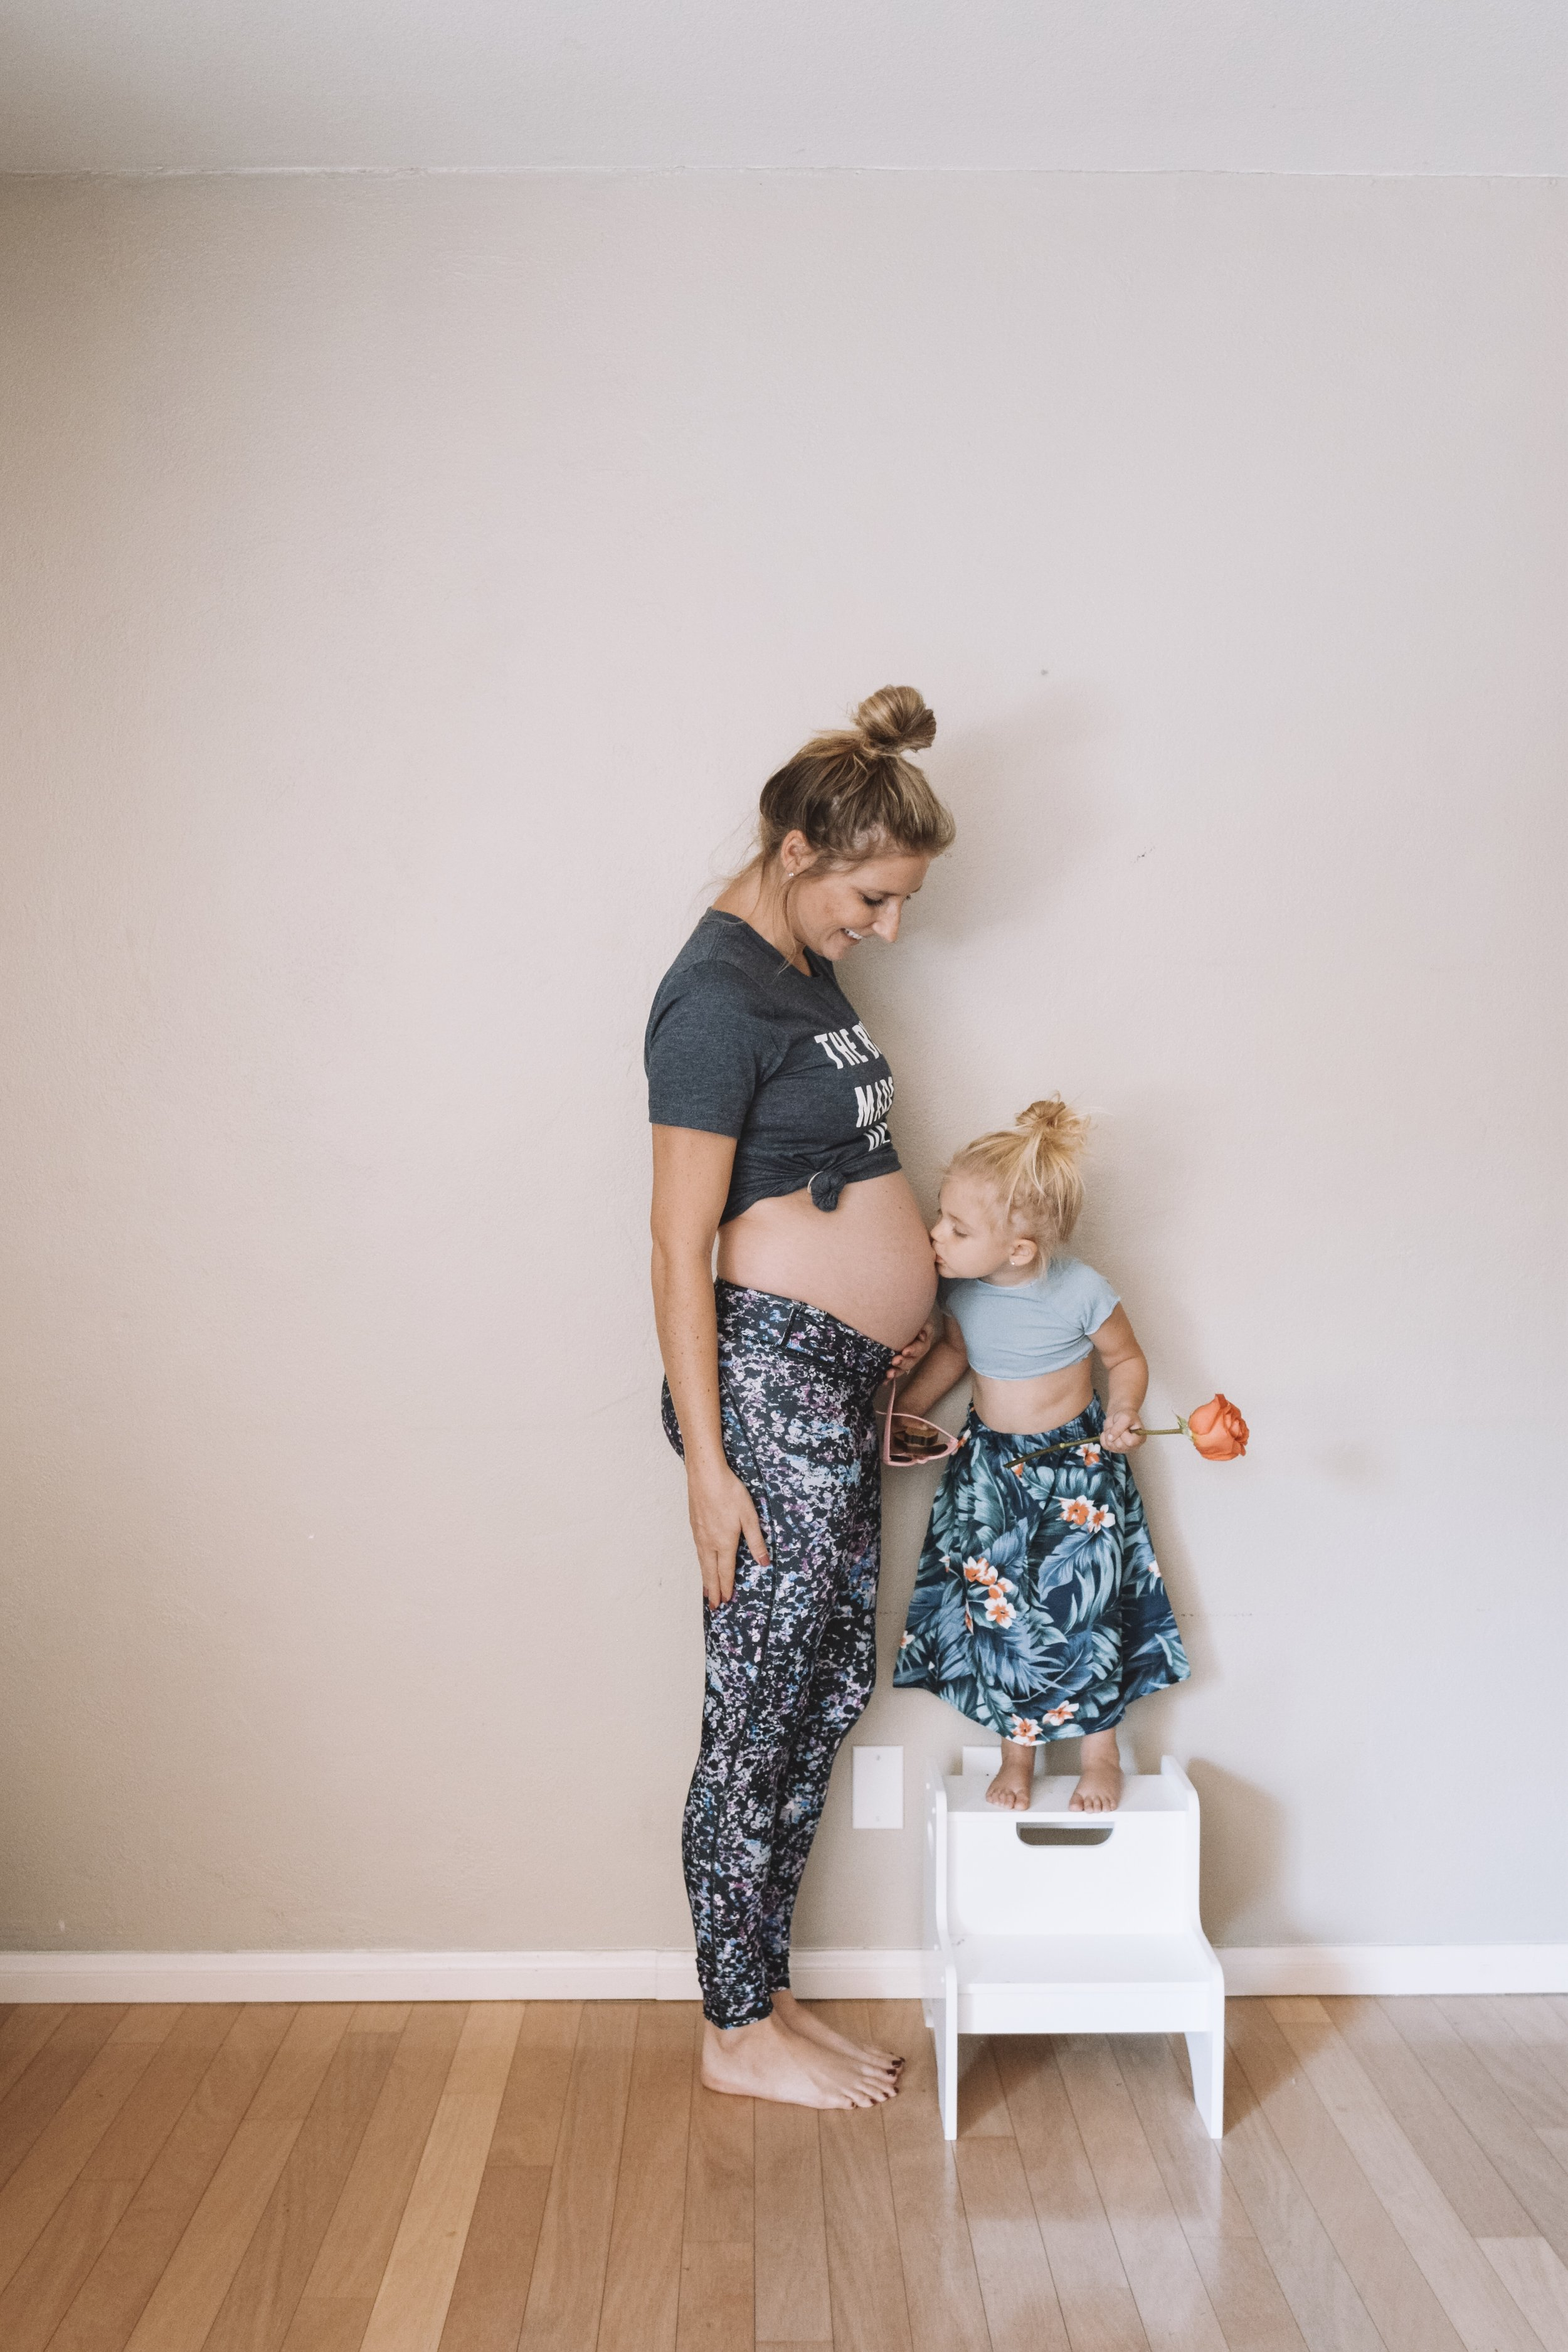 20 Weeks Pregnant Belly - Funny Pregnancy Shirts - The Overwhelmed Mommy Blogger